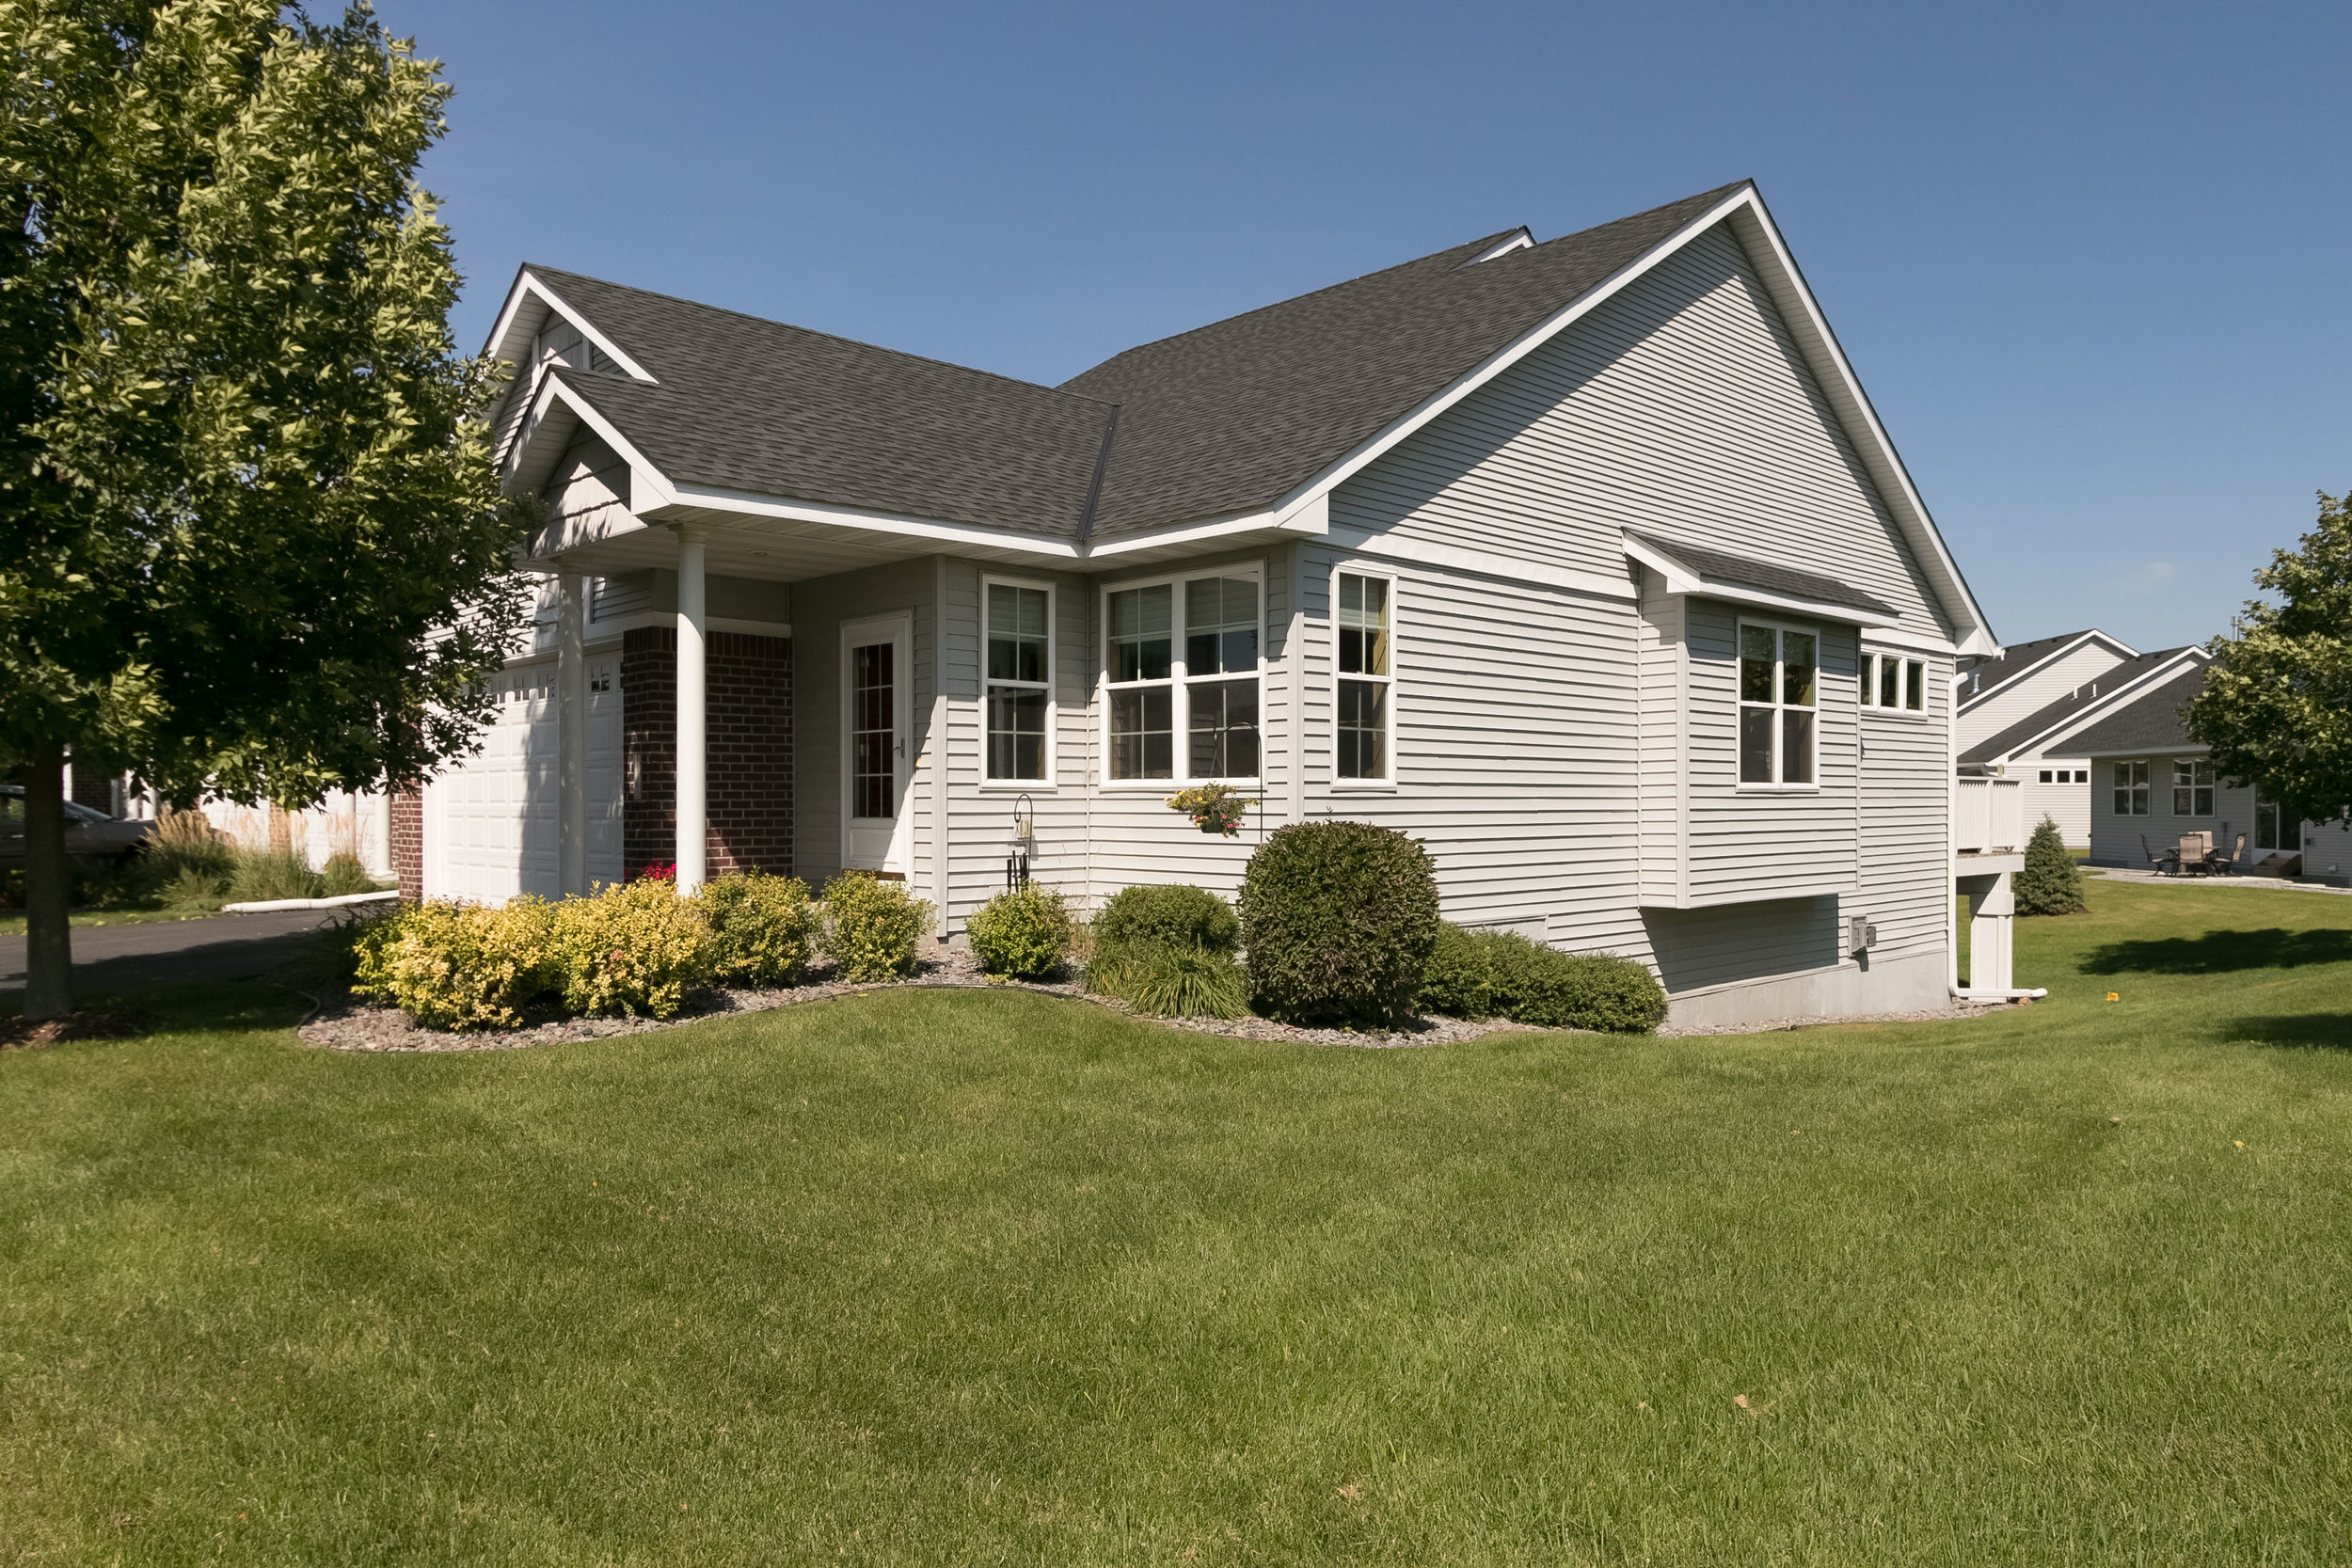 Townhomes offer 100% ownership but without the usual maintenance and upkeep required by a traditional single family home.